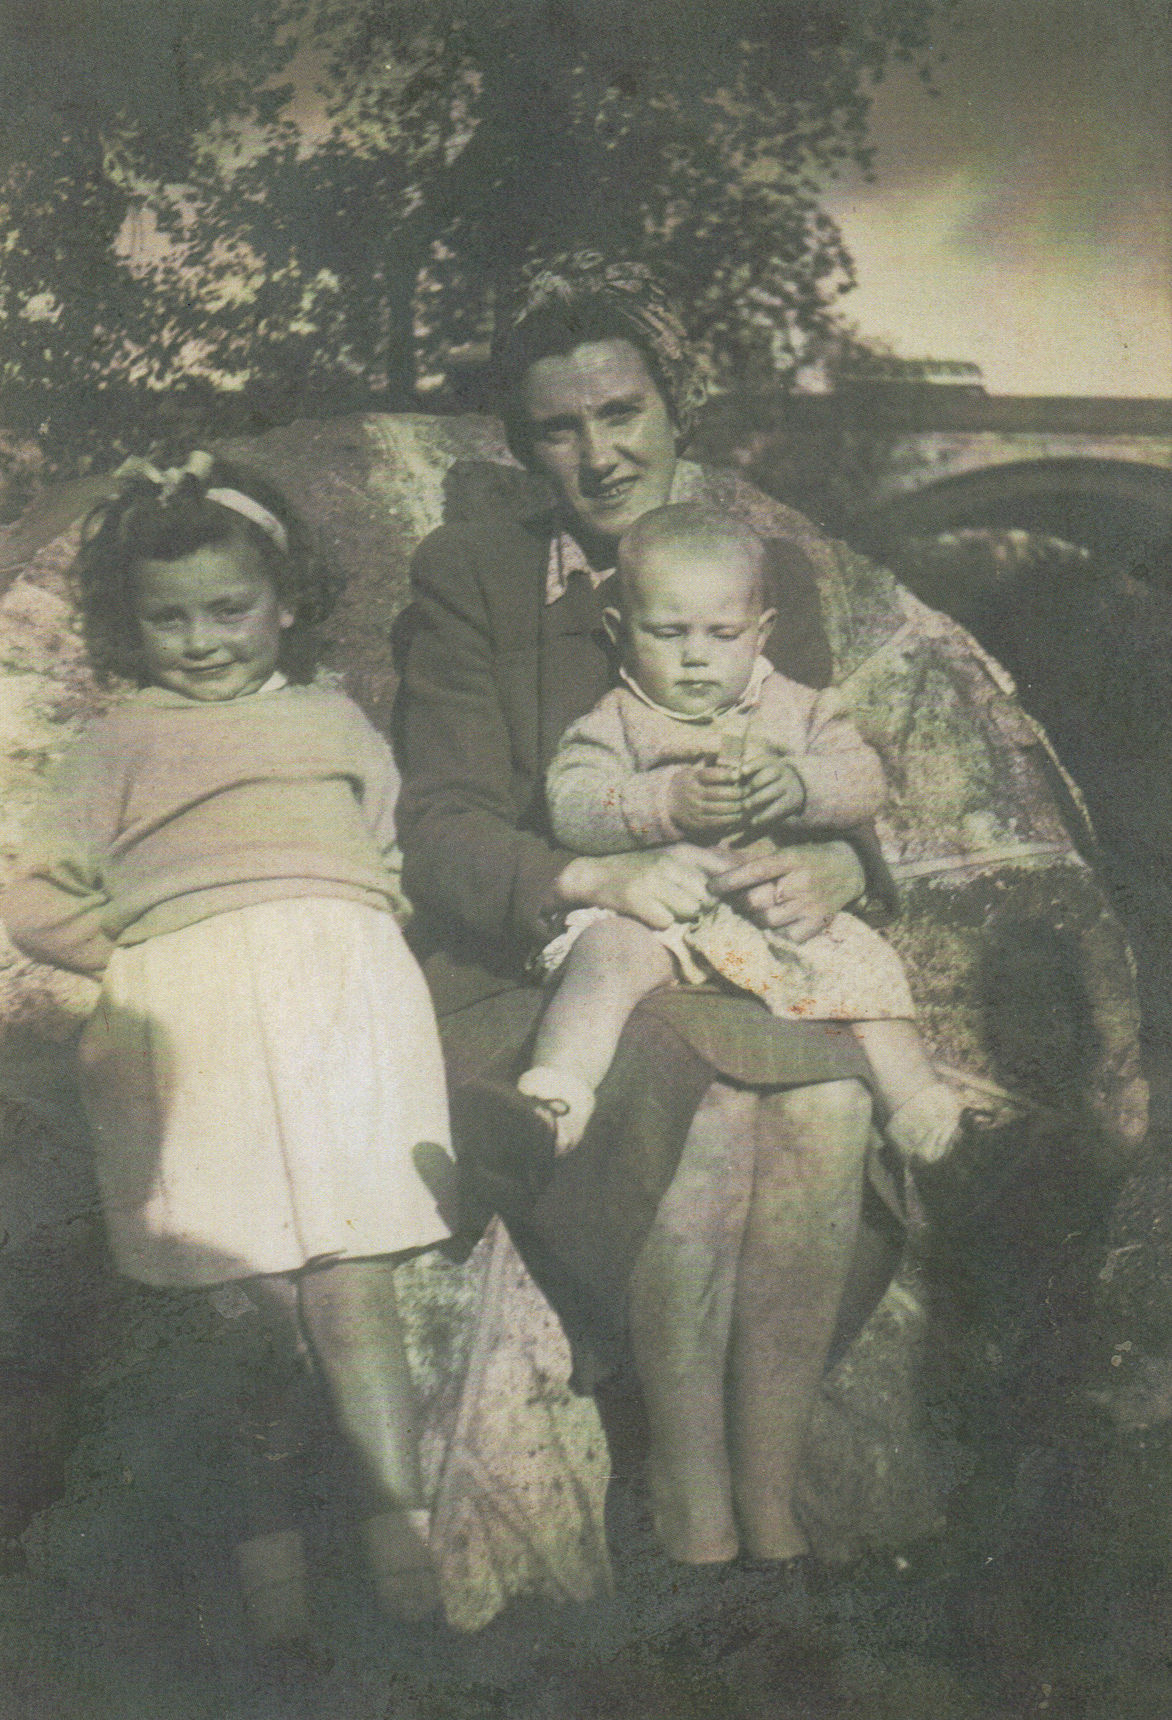 Left to right my Sister Avril, Mum and Me, on Mum's knee at the Wheel.